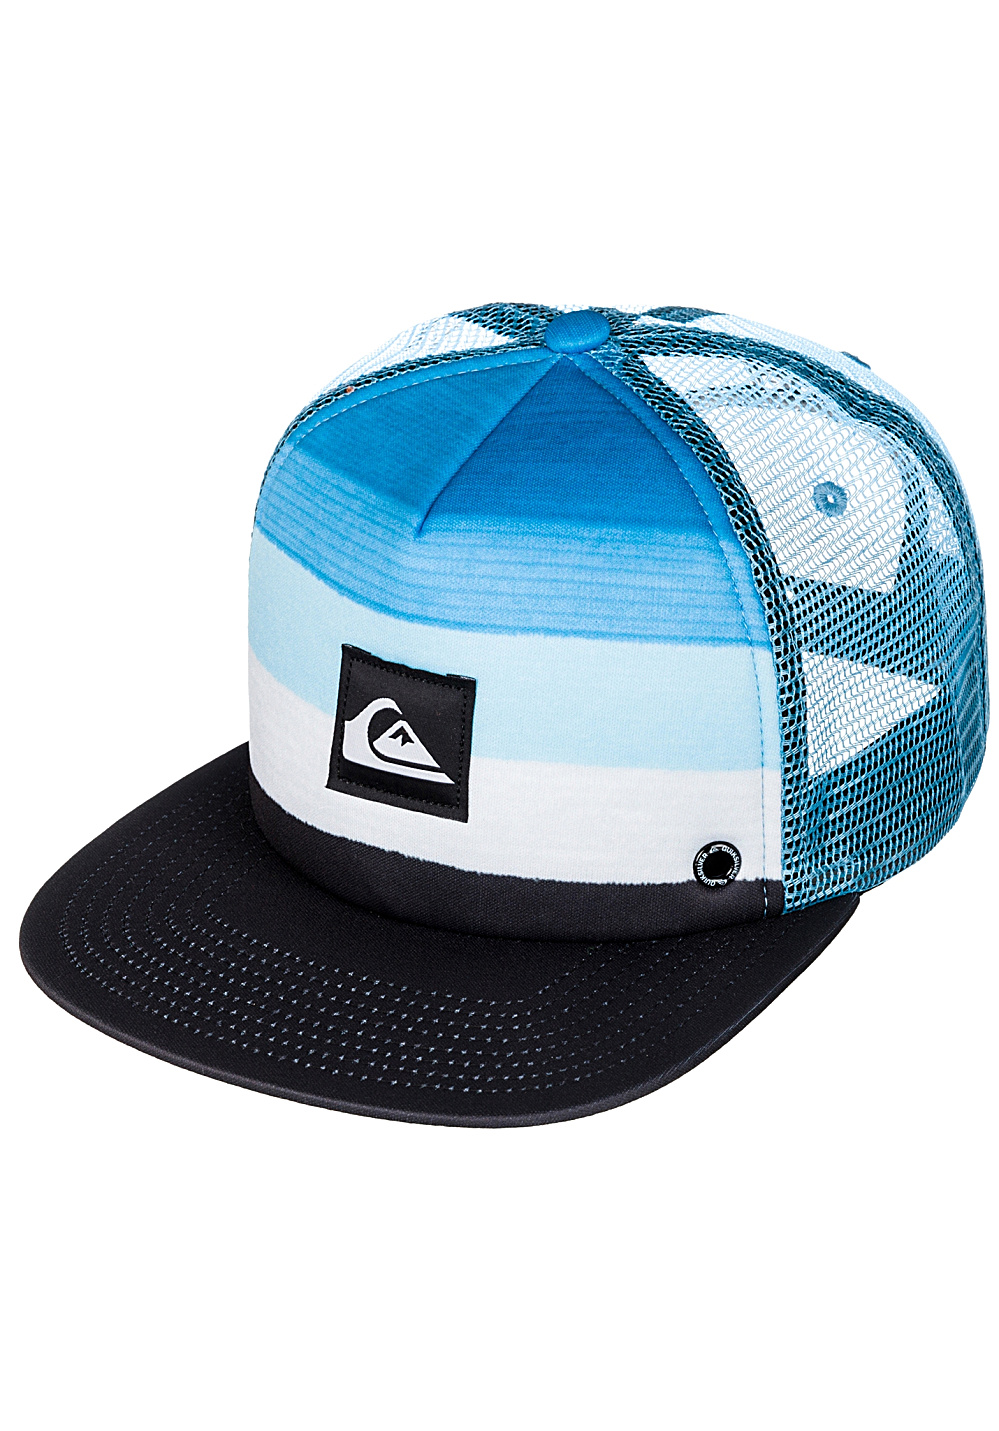 3ec4c0bdf8a Next. This product is currently out of stock. Quiksilver. Boardies - Trucker  Cap for Men. €24.95